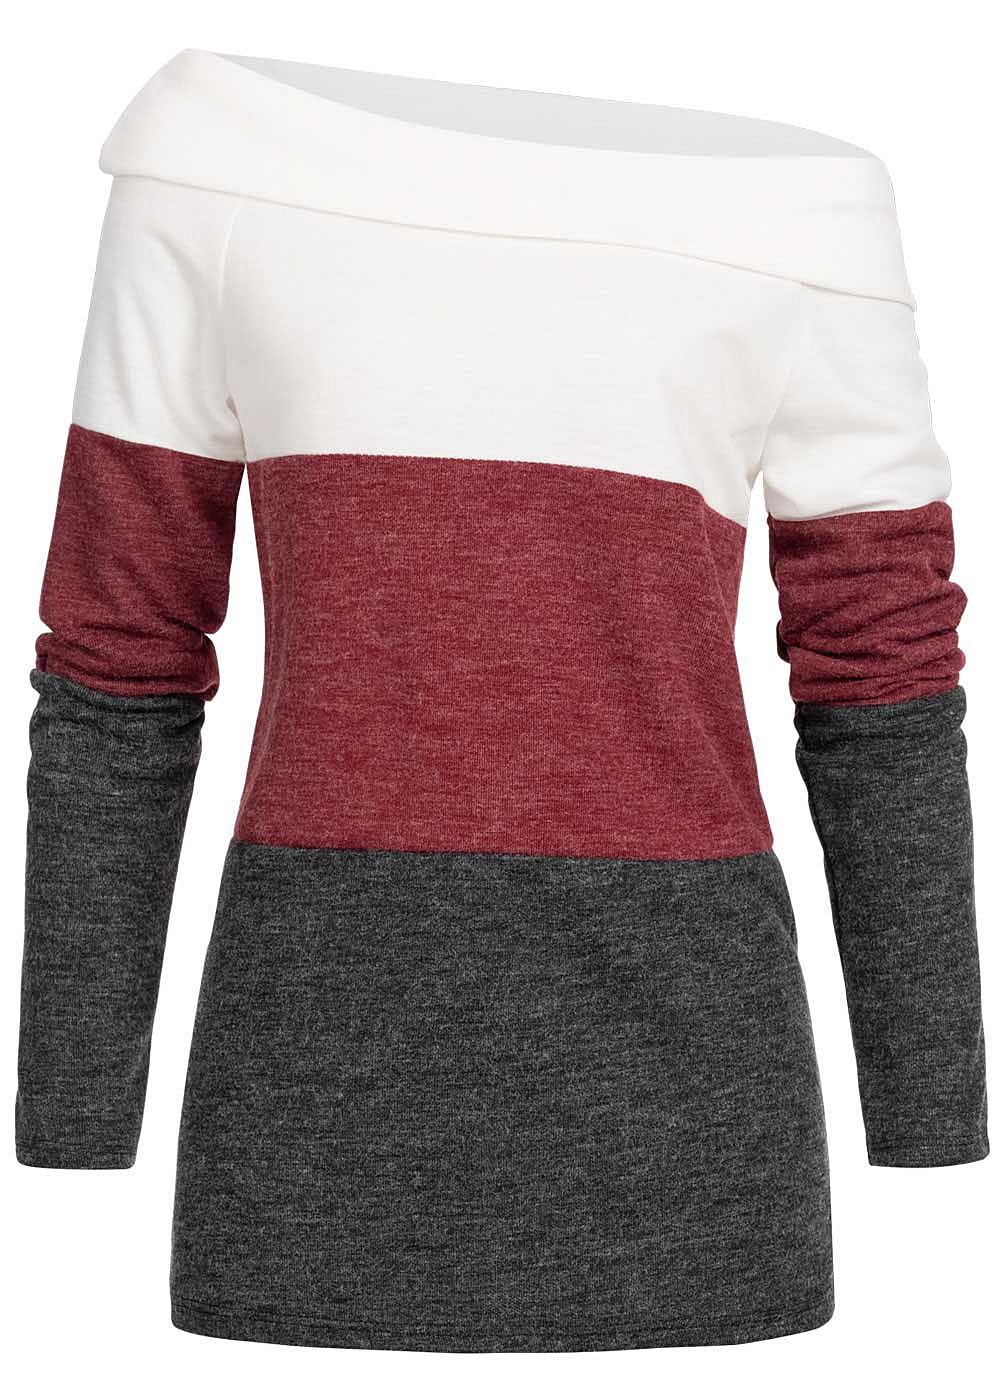 Styleboom Fashion Damen One-Shoulder Colorblock Sweater weiss bordeaux schwarz - Art.-Nr.: 19106718